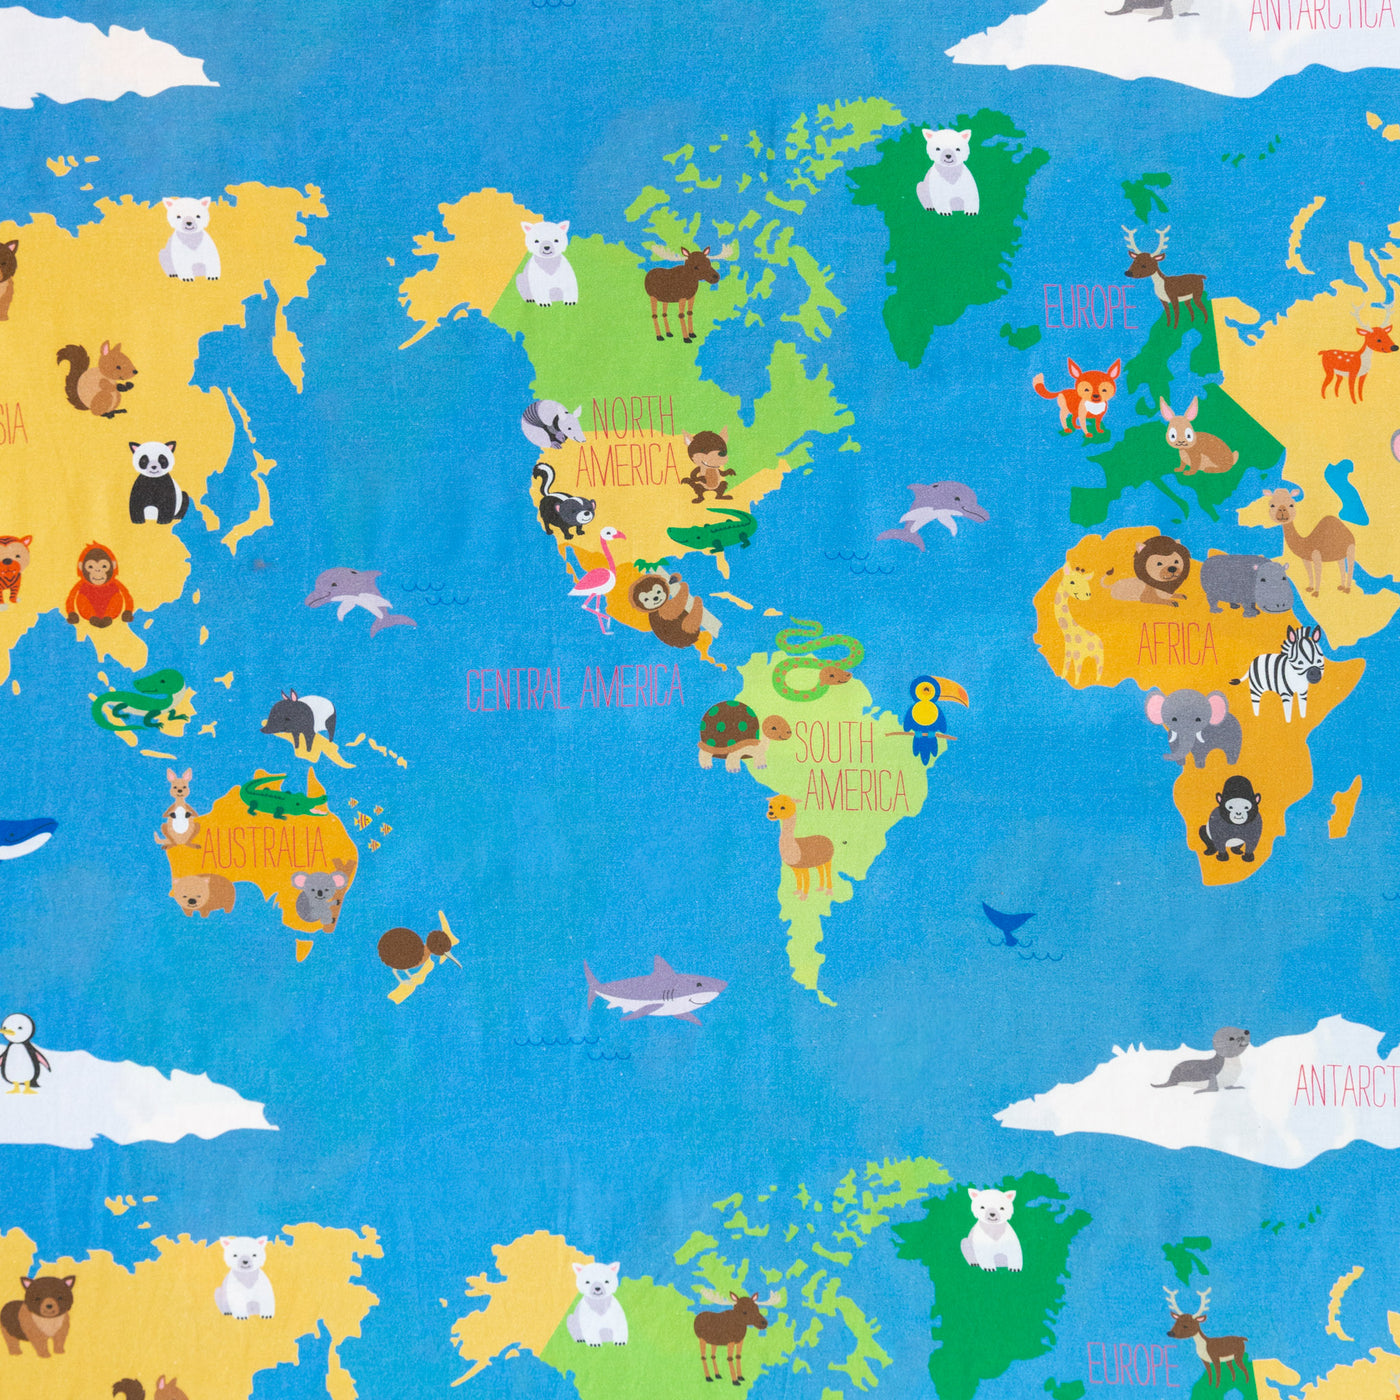 Smart Sheets - Animal World Map Pillowcase